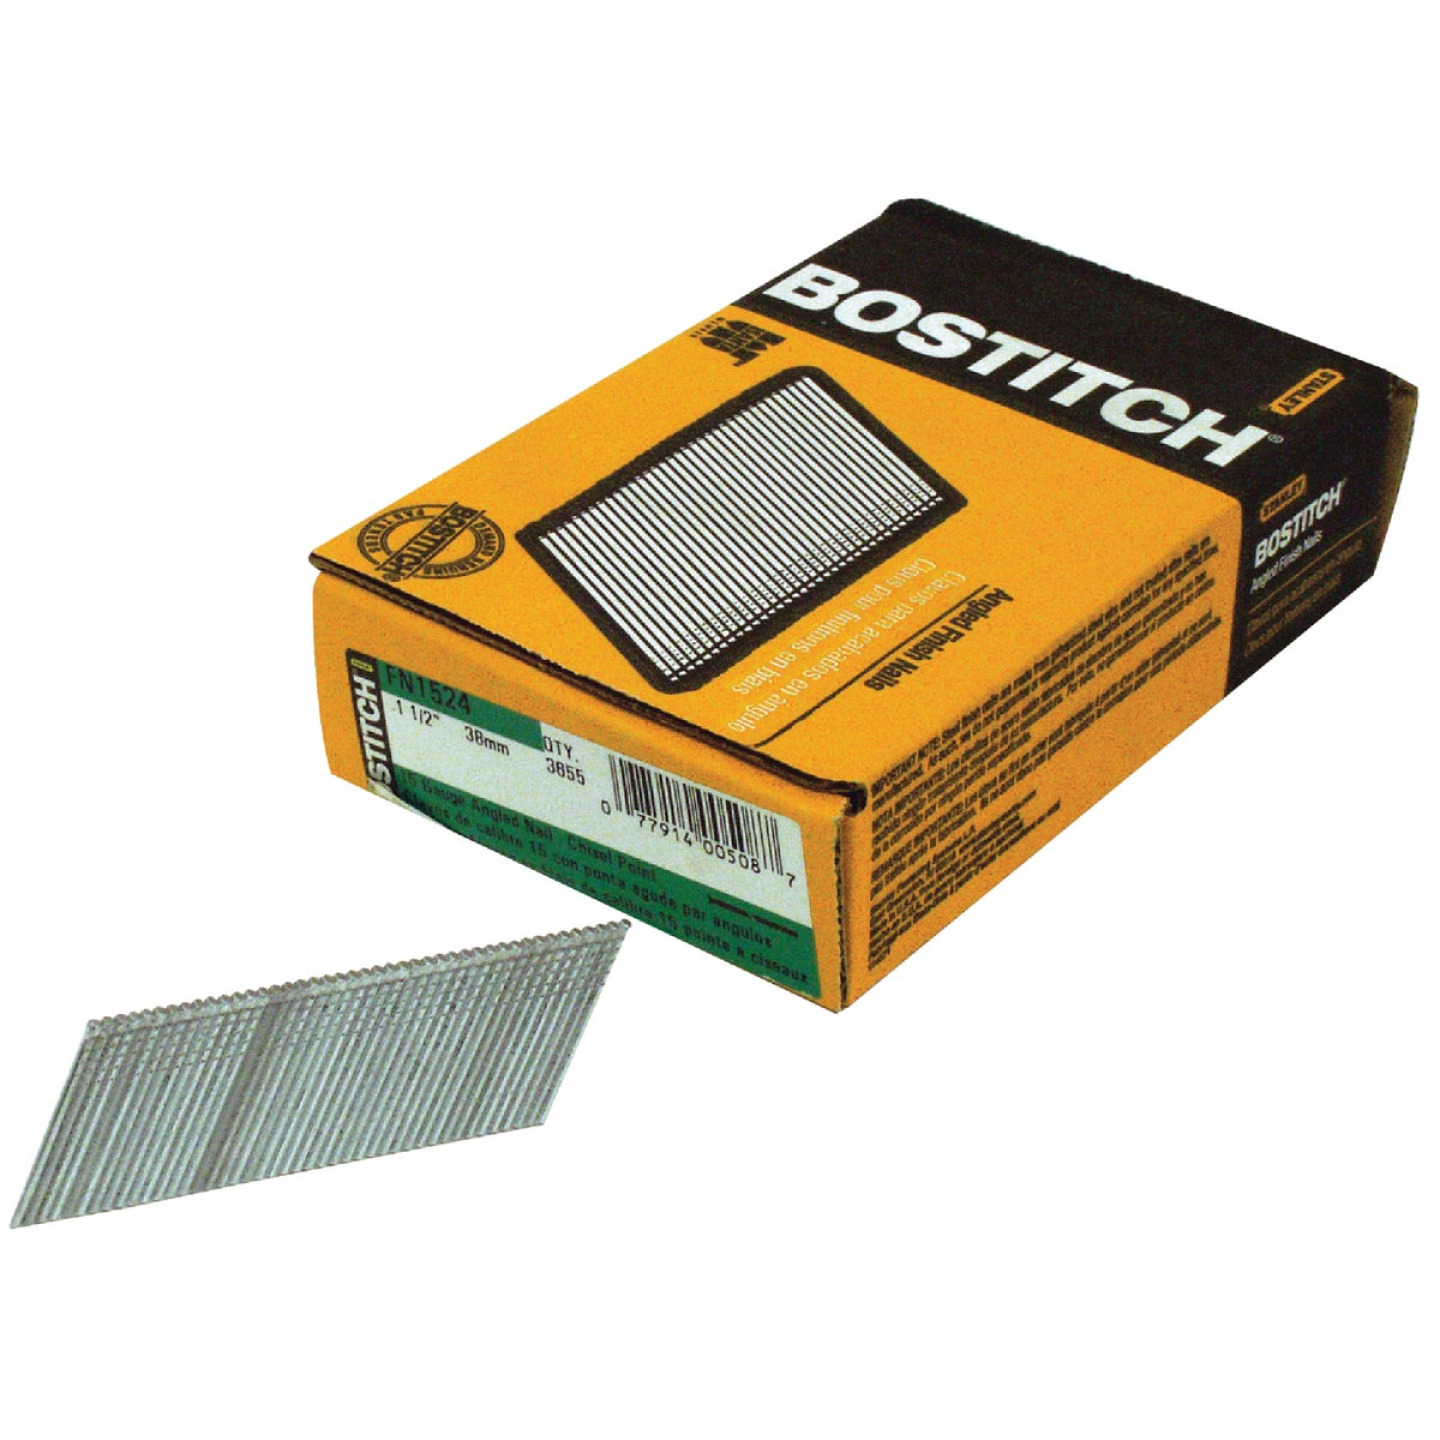 Bostitch 15-Gauge Coated 25 Degree FN-Style Angled Finish Nail, 1-1/2 In. (3655 Ct.) Image 1